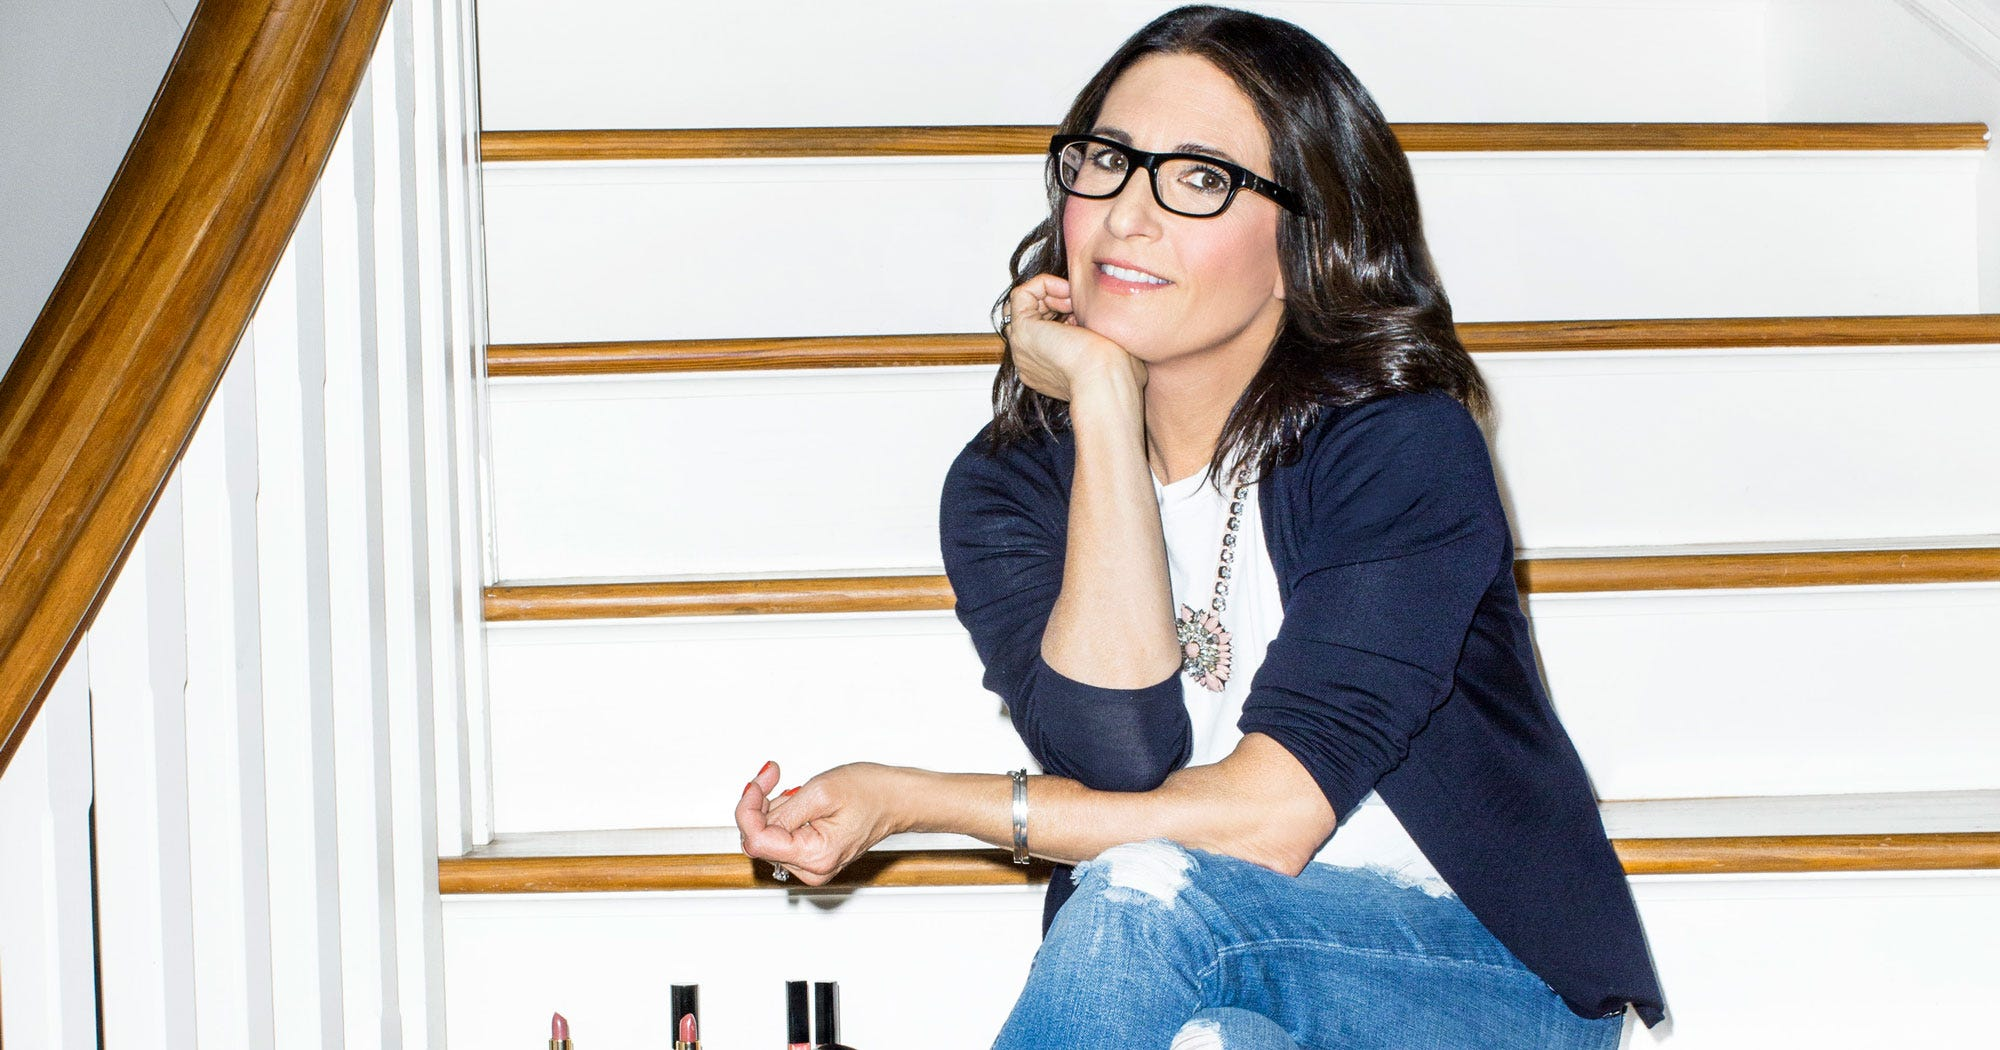 Bobbi Brown: I'm Ready To Start Another Revolution